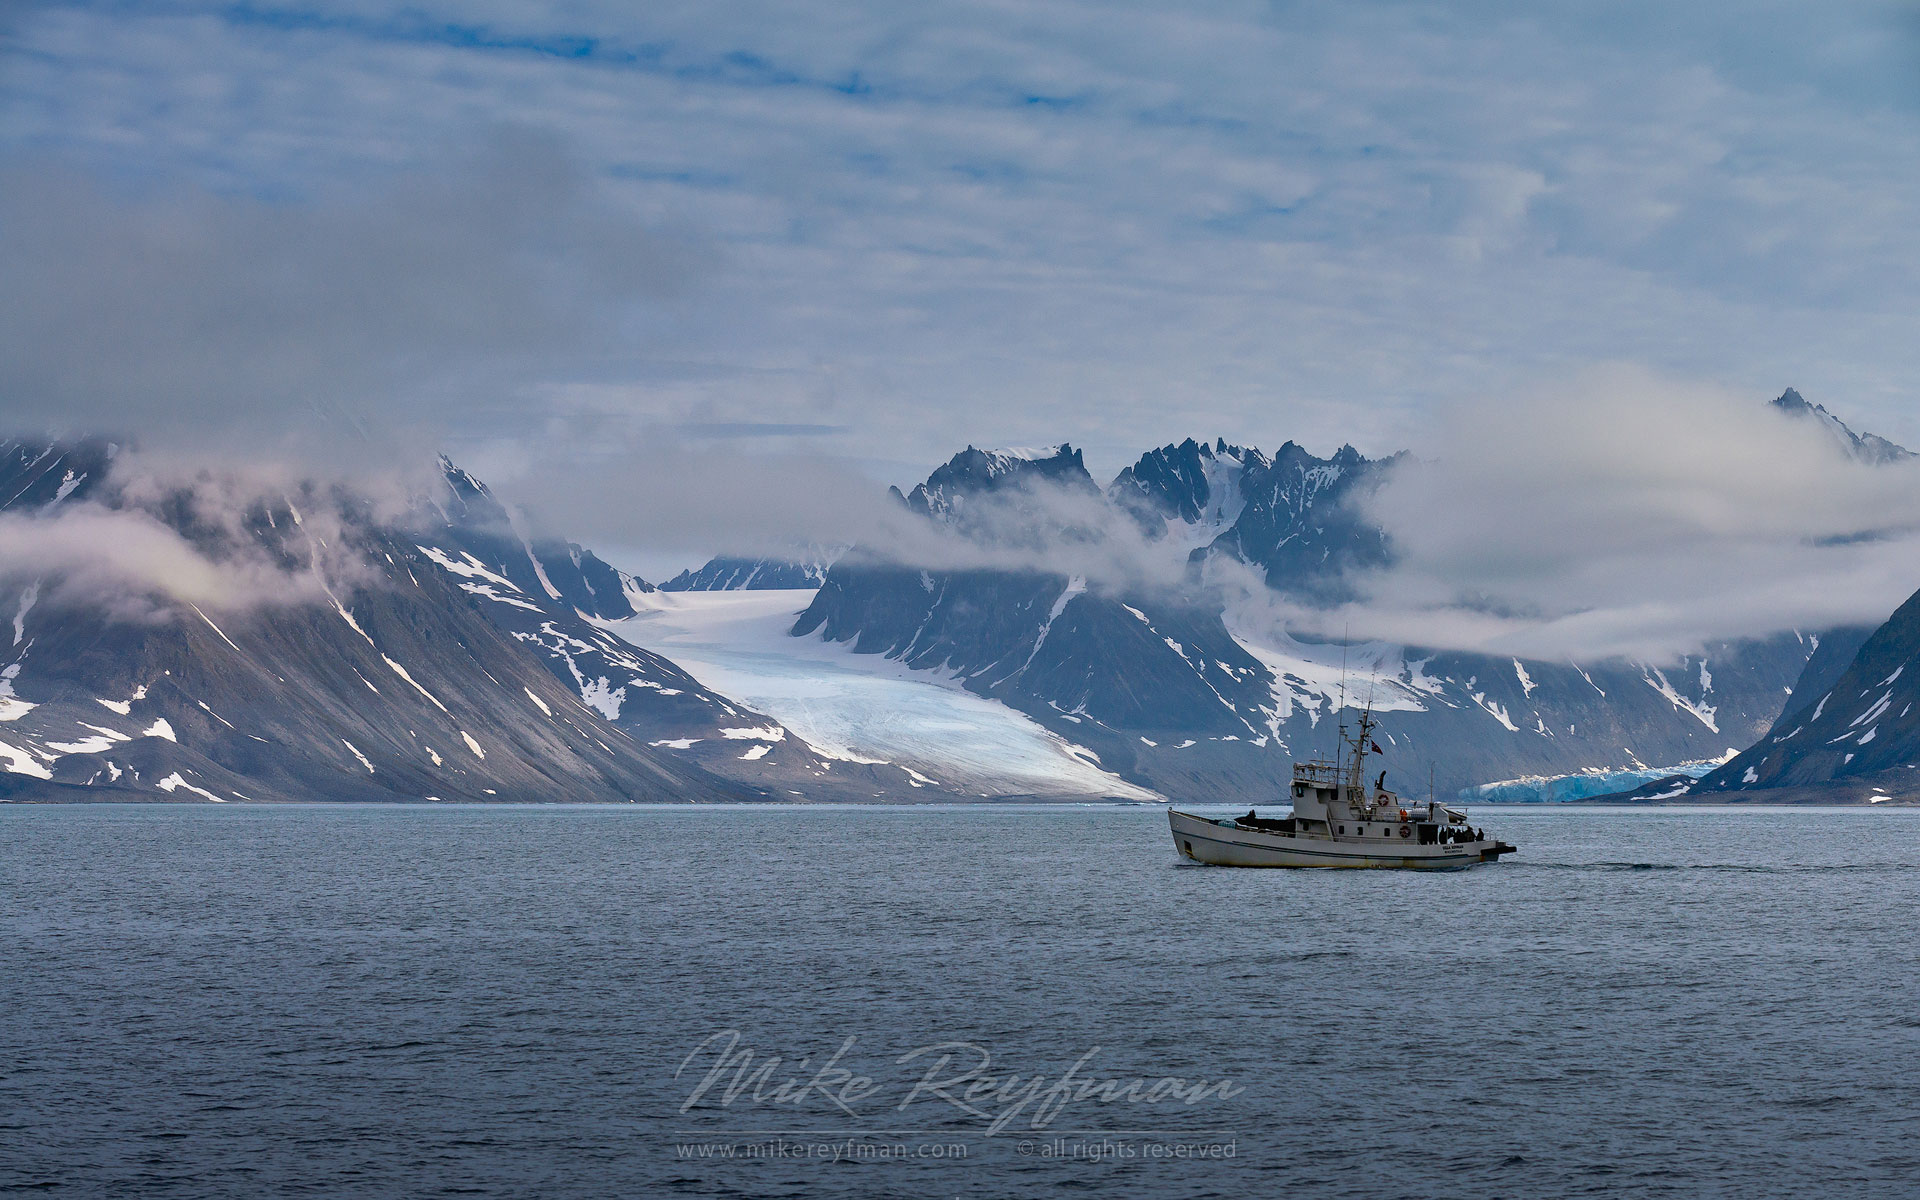 Boat, Glaciers and Mountains. Svalbard (Spitsbergen) Archipelago, Norway. - Arctic-Landscape-Svalbard-Spitsbergen-Norway - Mike Reyfman Photography